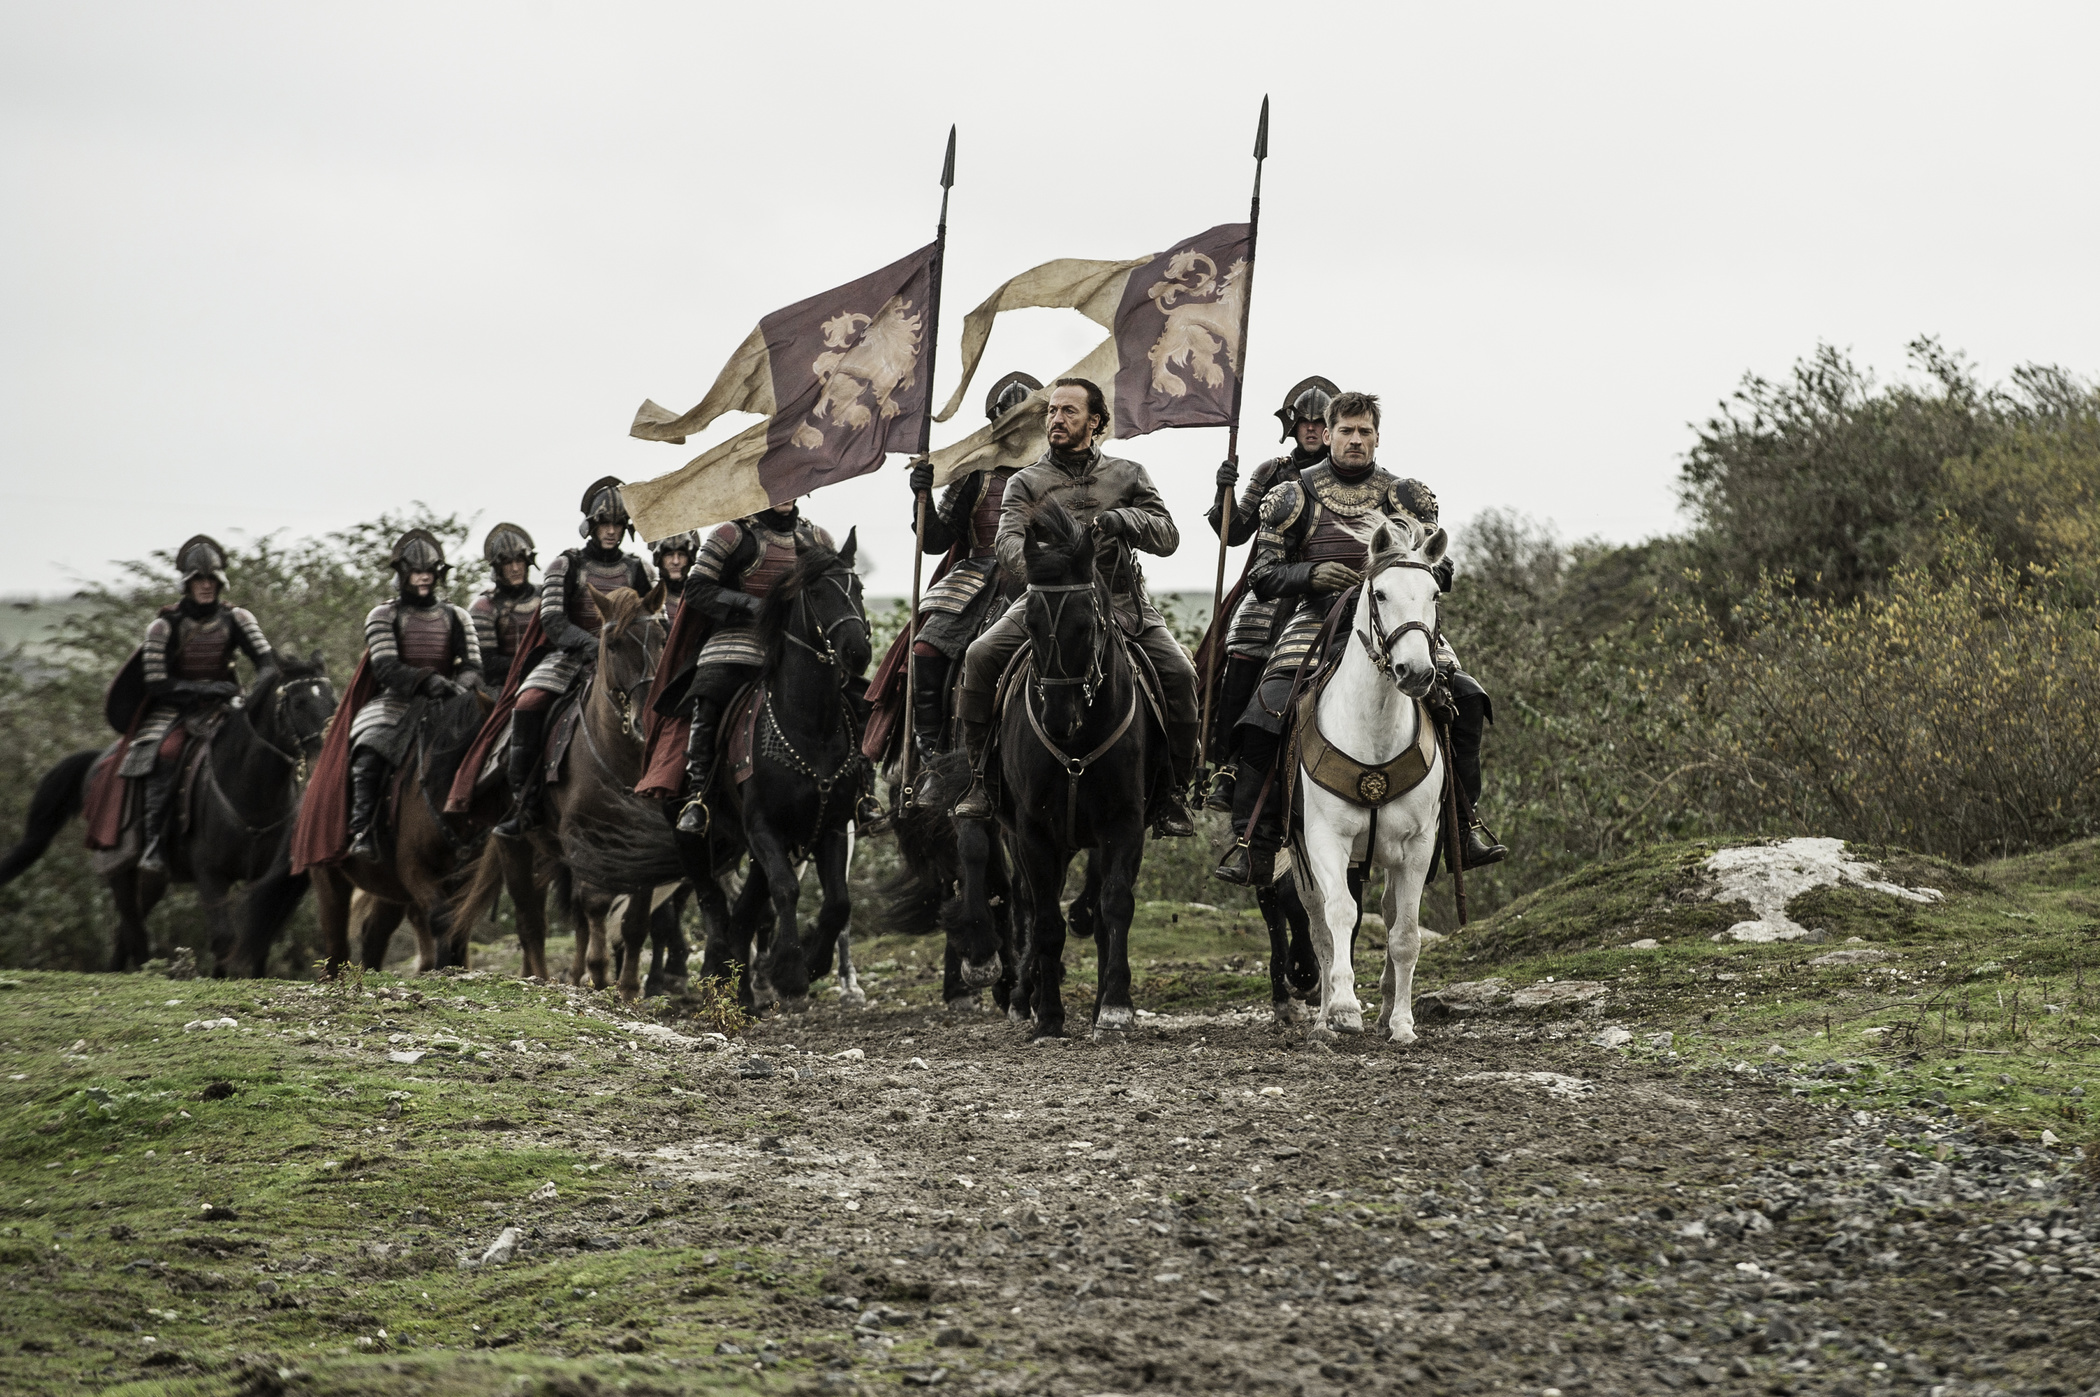 HBO exec confirms Game of Thrones' eighth season will be its last